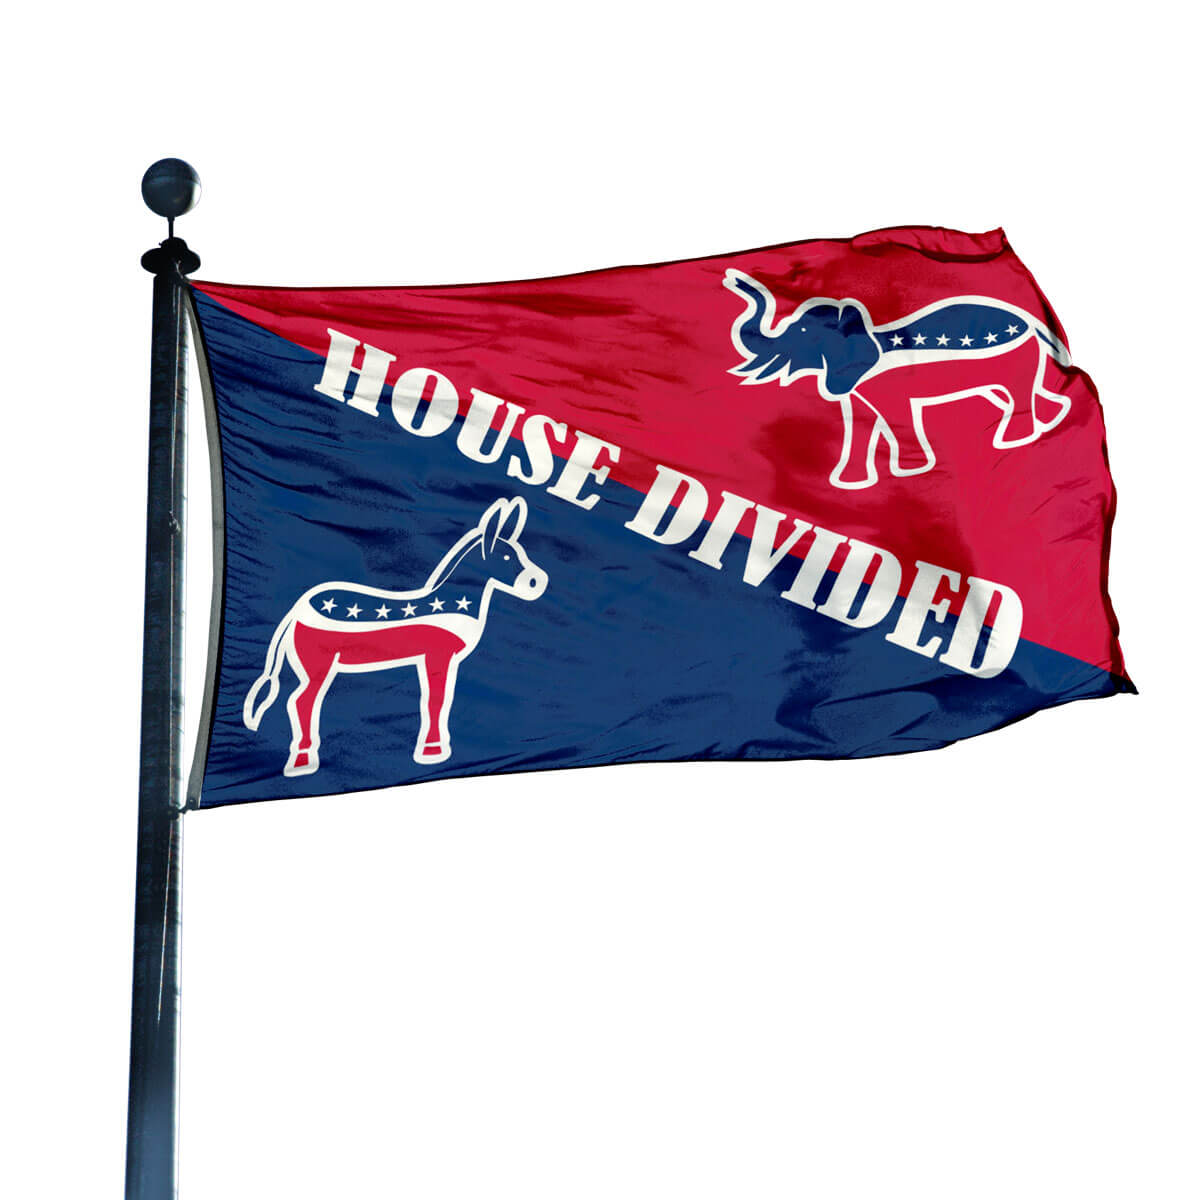 Democrat Republican House Divided Flag 3 Ft X 5 Ft Flagandbanner Com